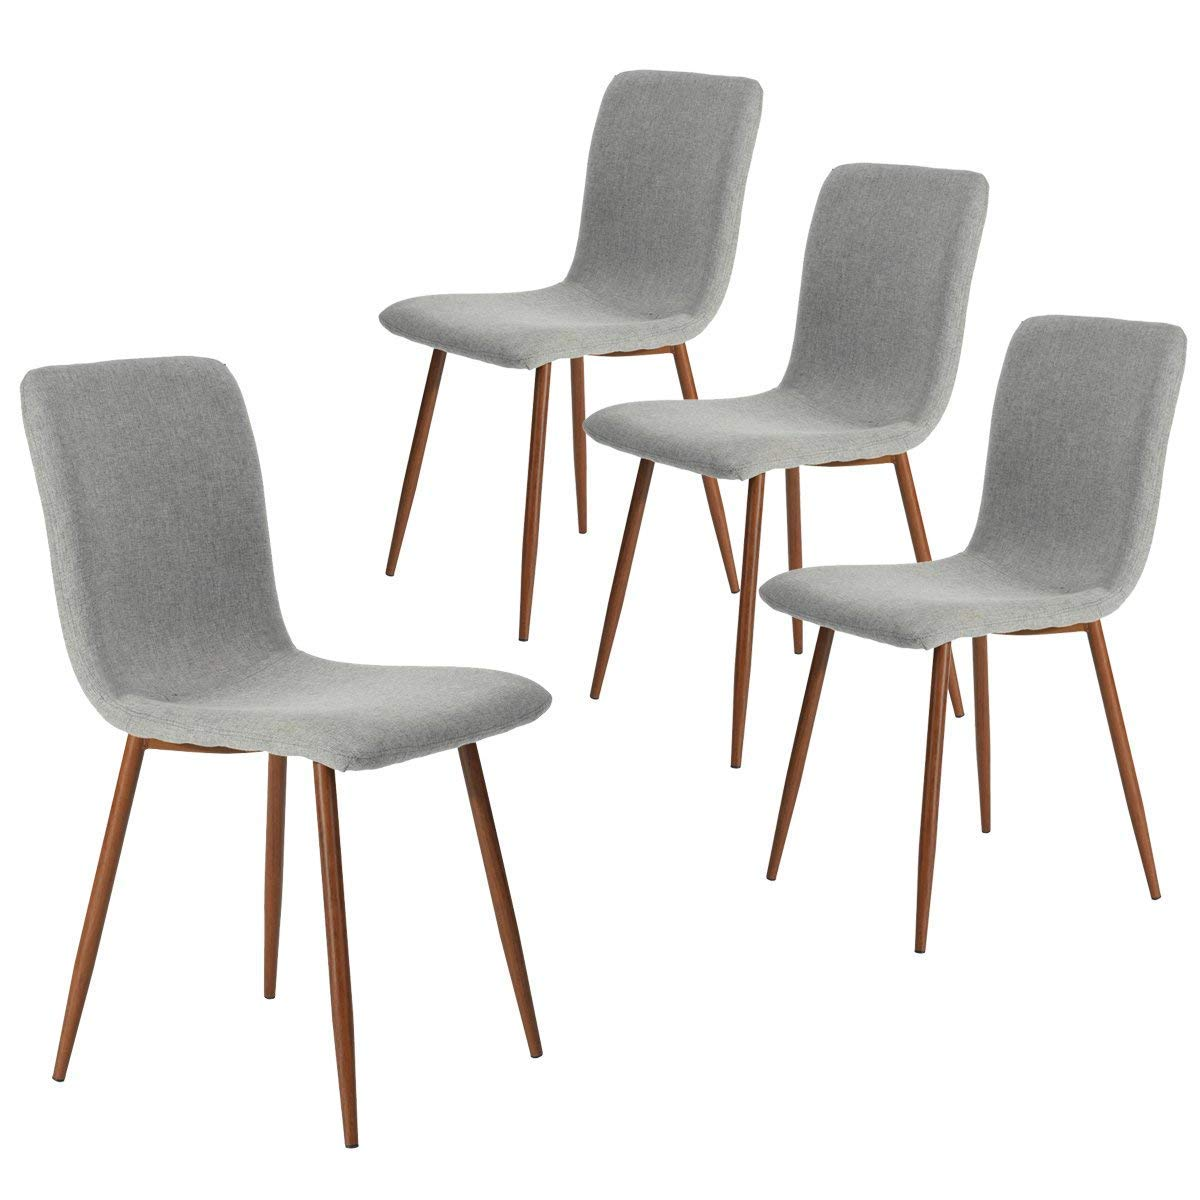 Coavas Dining Chairs Set of 4, Kitchen Chairs with Fabric Cushion Seat Back, Modern Mid Century Living Room Side Chairs with Sturdy Metal Legs for Kitchen Dining Room,Grey